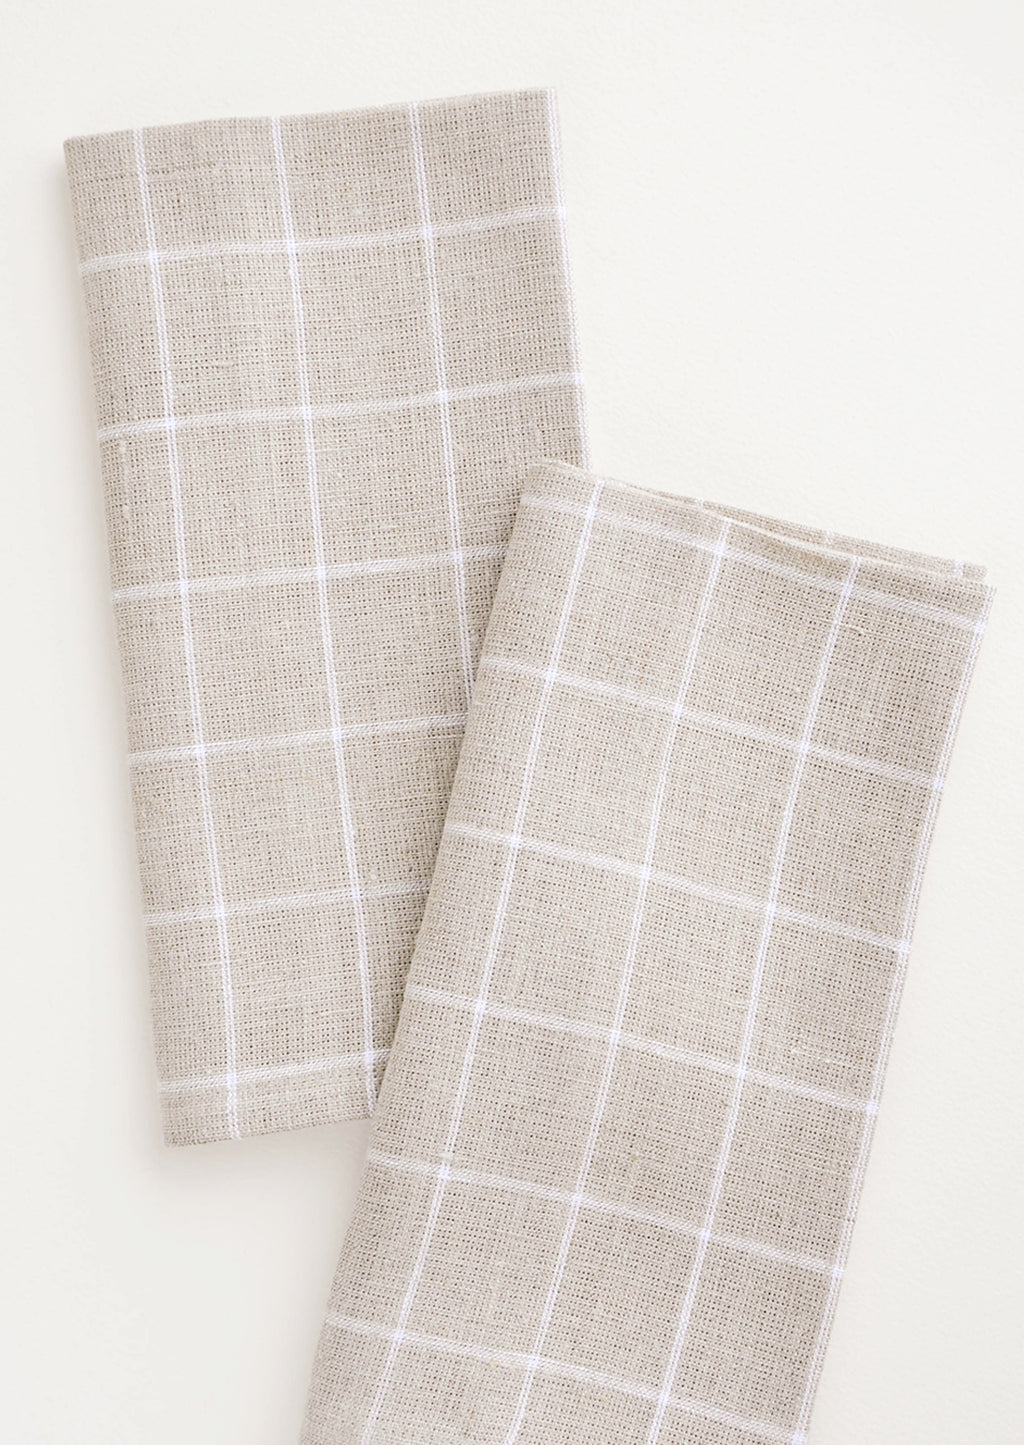 Flax Grid: Pair of fabric dinner napkins in beige and white grid pattern